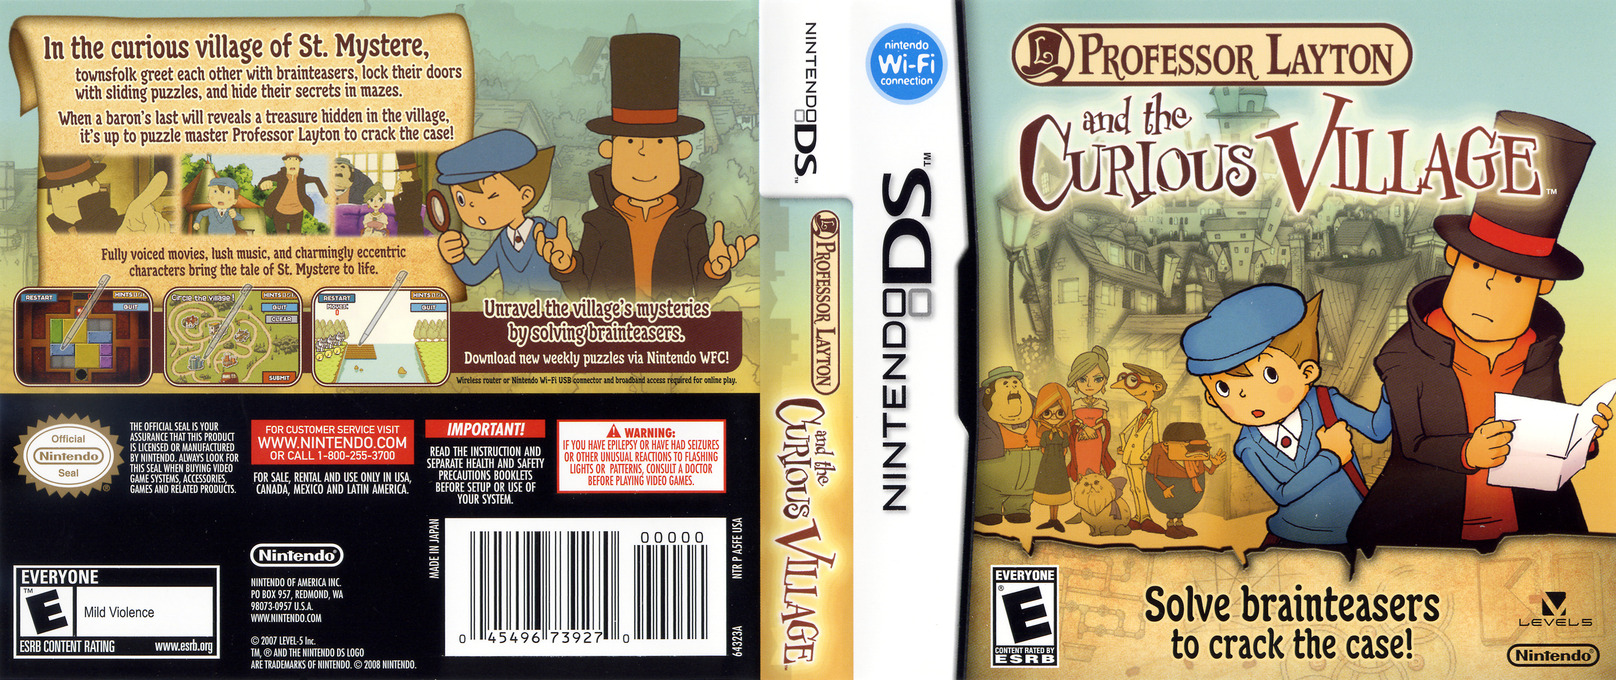 Professor Layton and the Curious Village (Demo) DS coverfullHQ (Y49E)